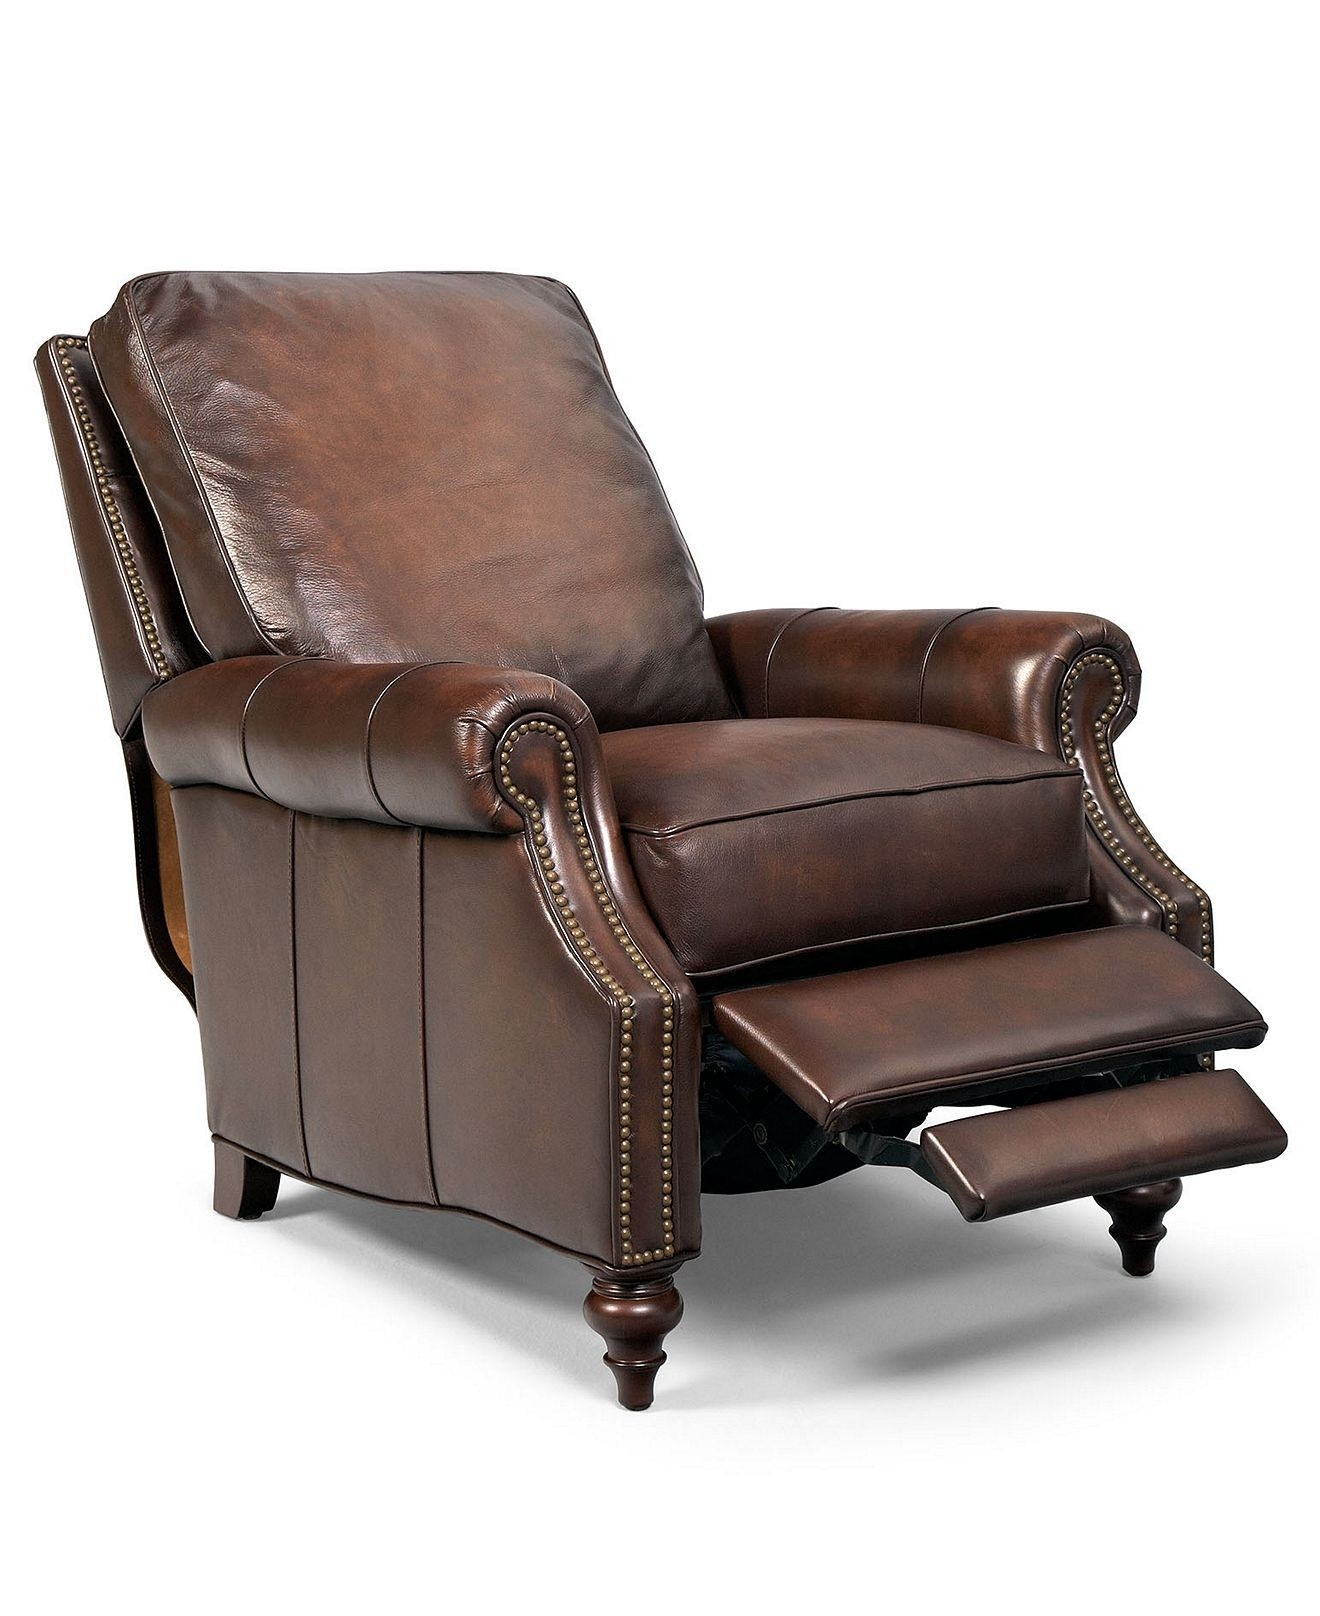 Superieur Luxury Recliners   Ideas On Foter